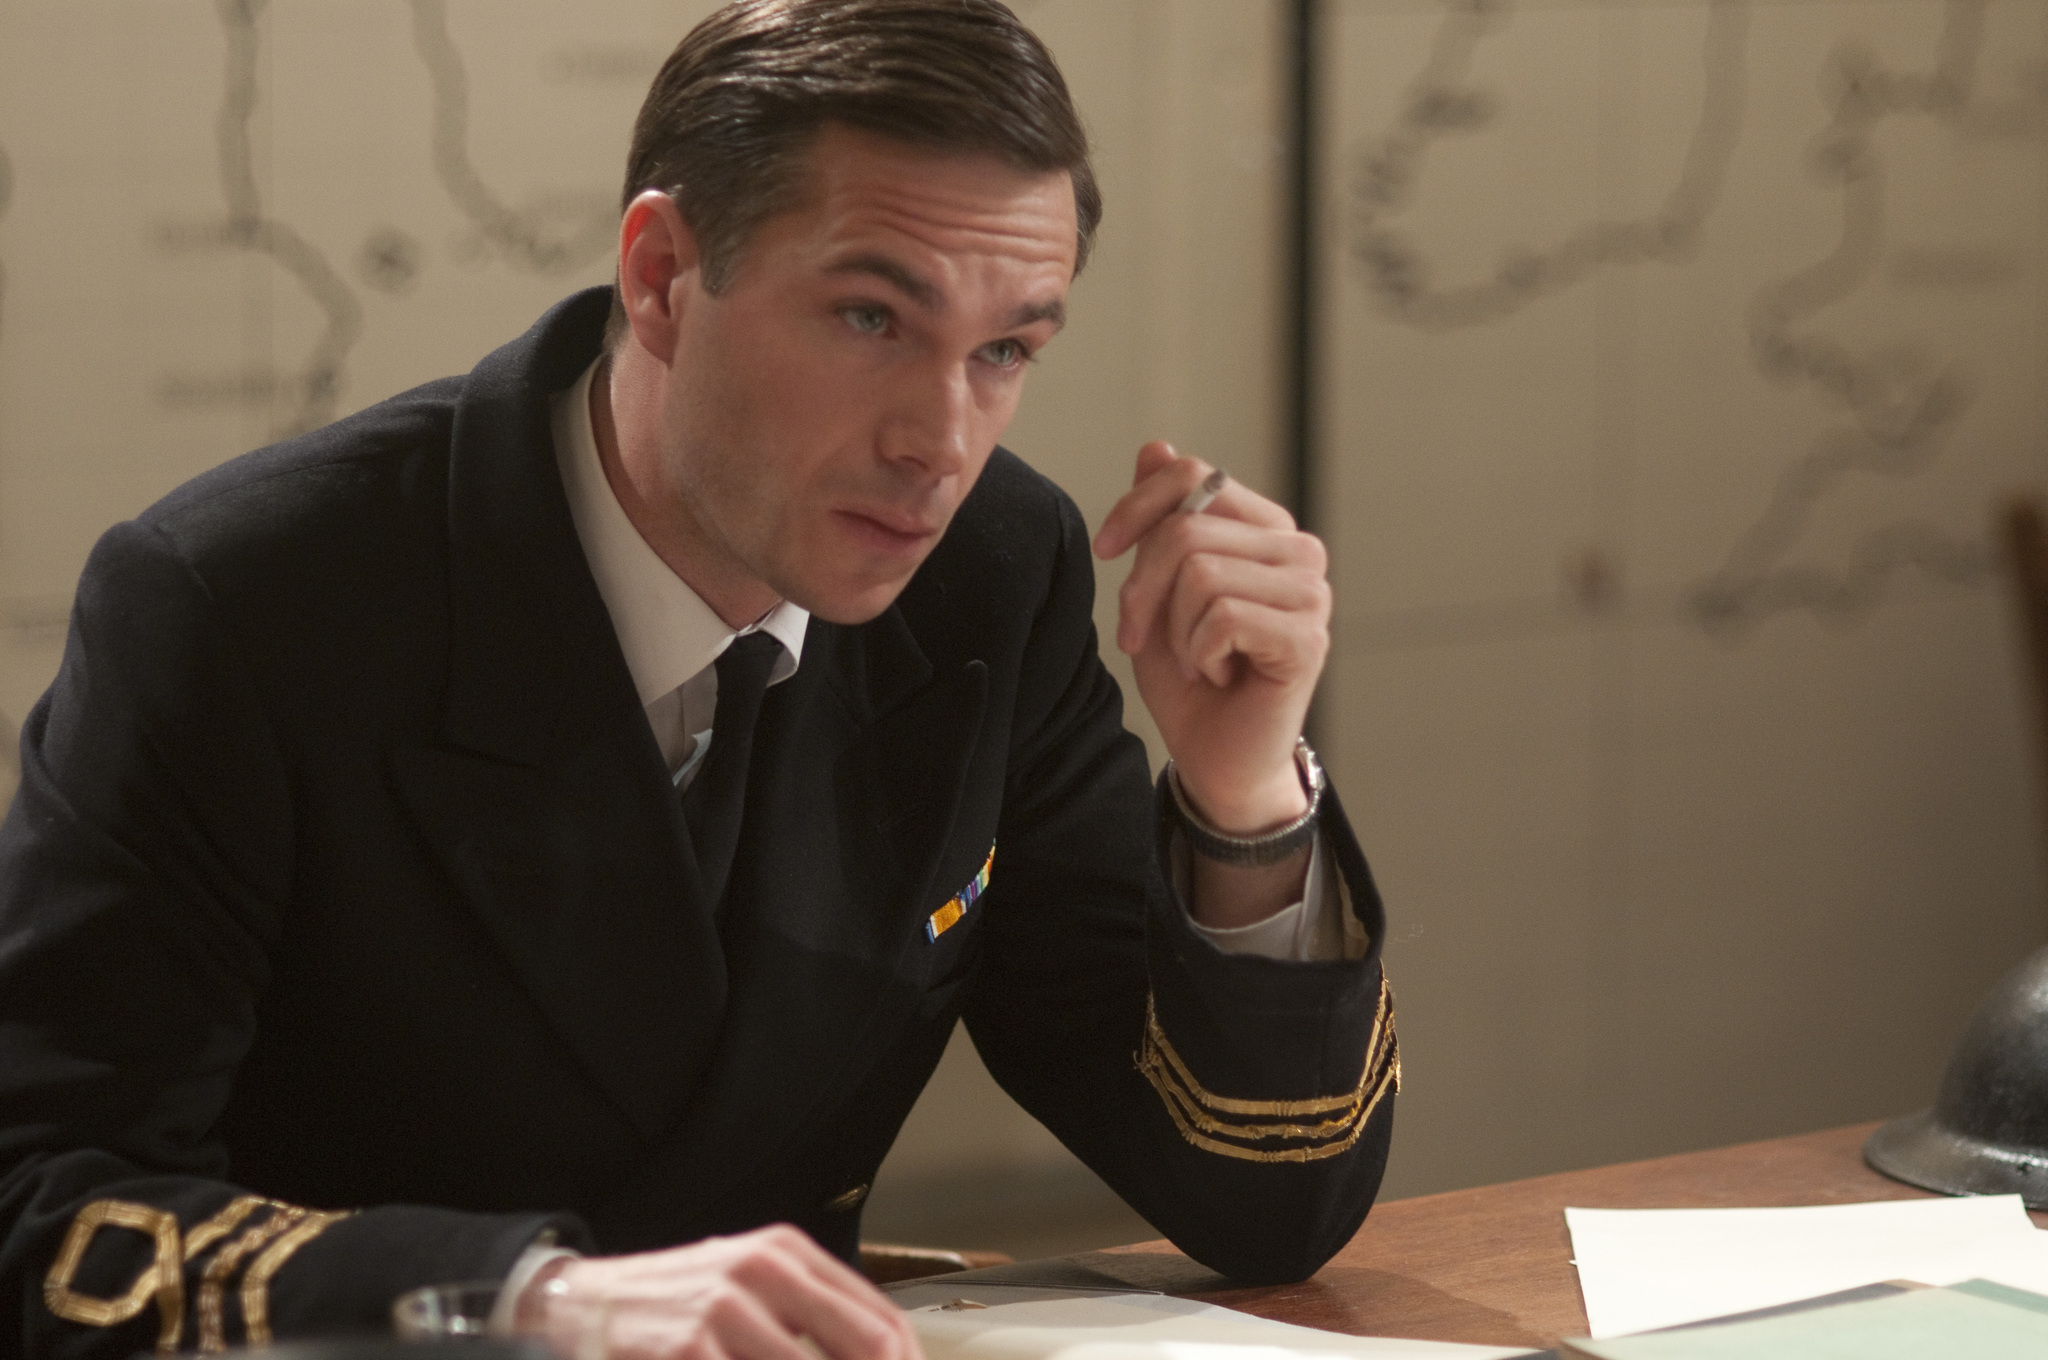 James D'Arcy in Age of Heroes (2011)